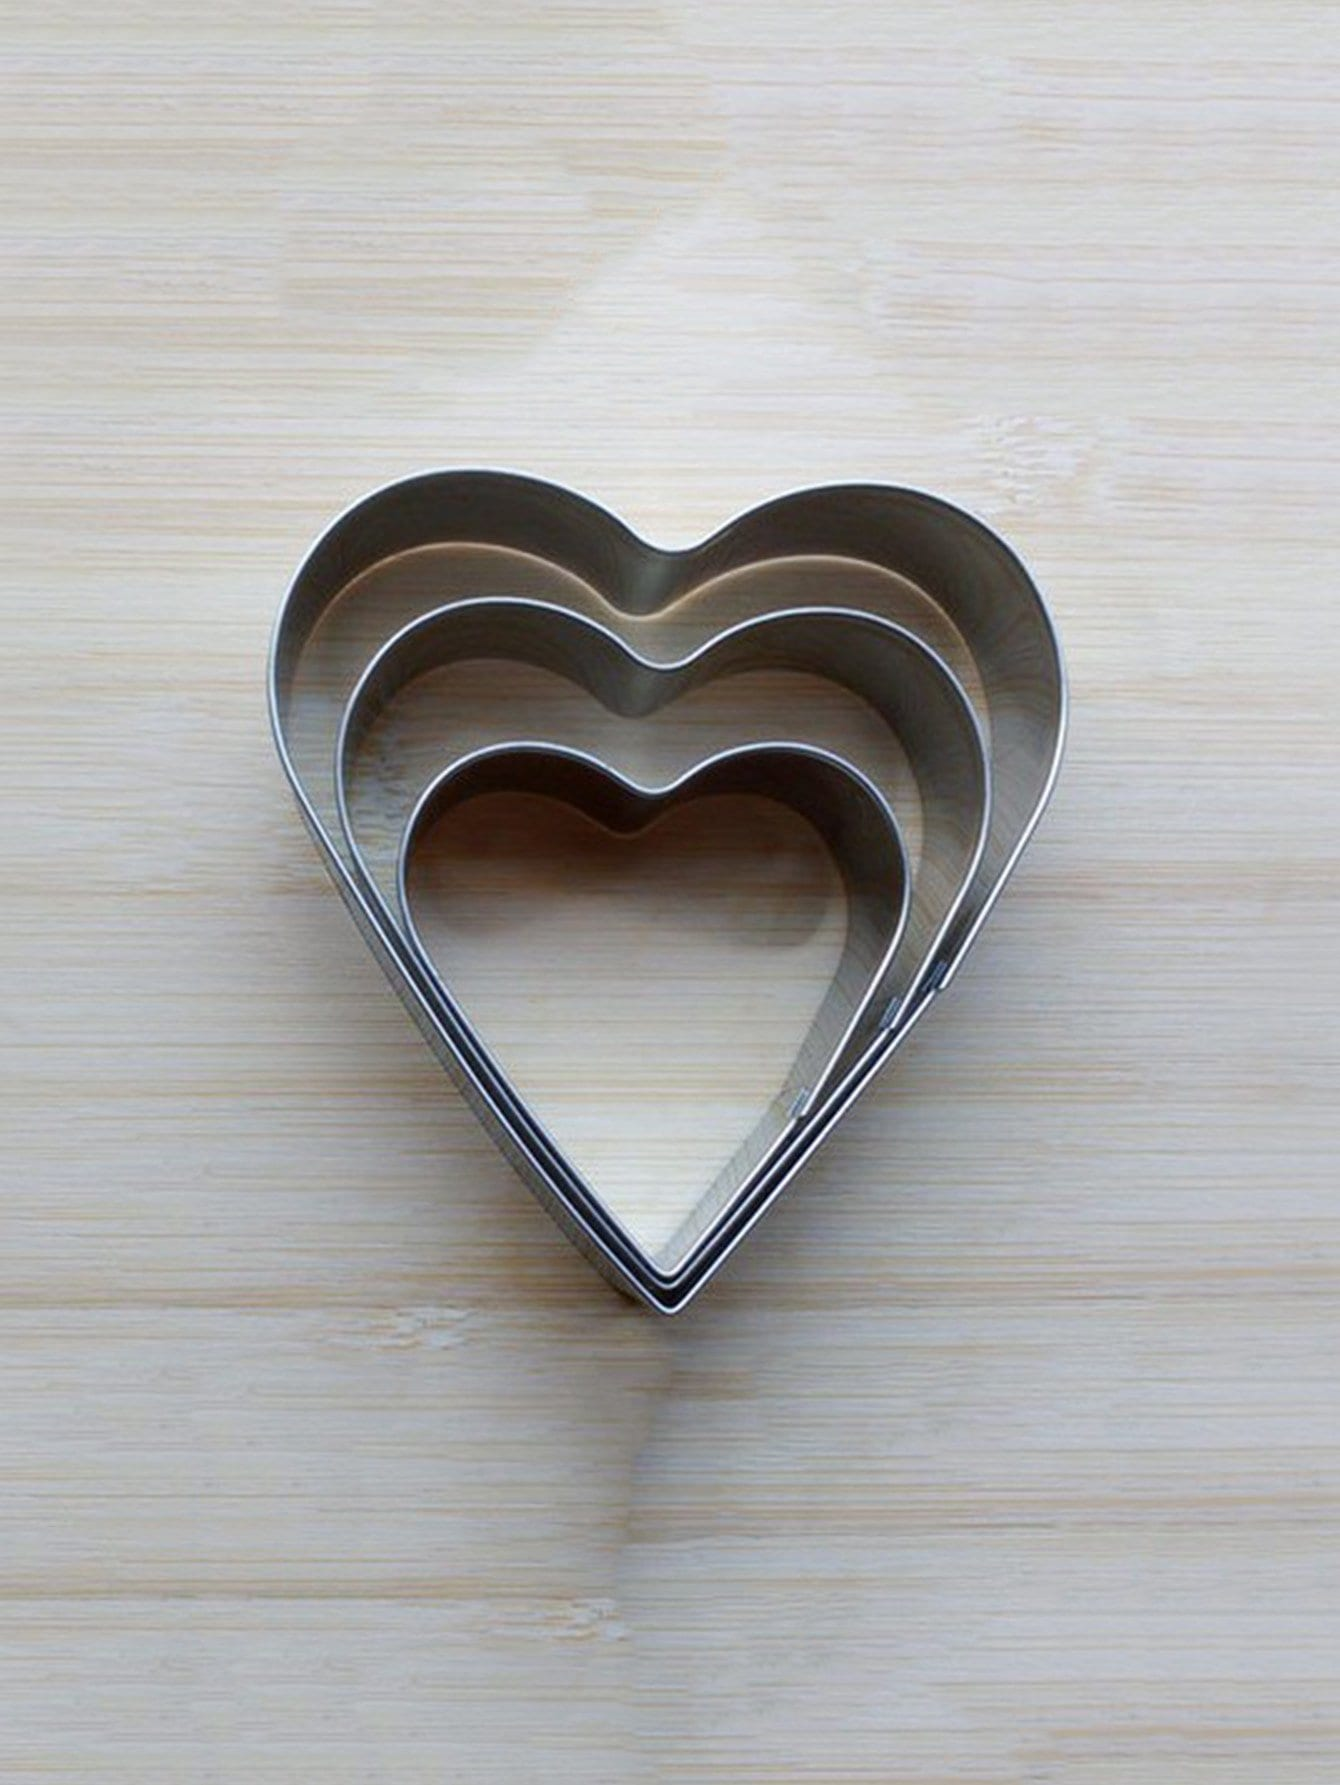 Stainless Steel Heart Cookie Cutter 3pcs 3pcs stainless steel snowman cookie cutter cake biscuit decorating tool